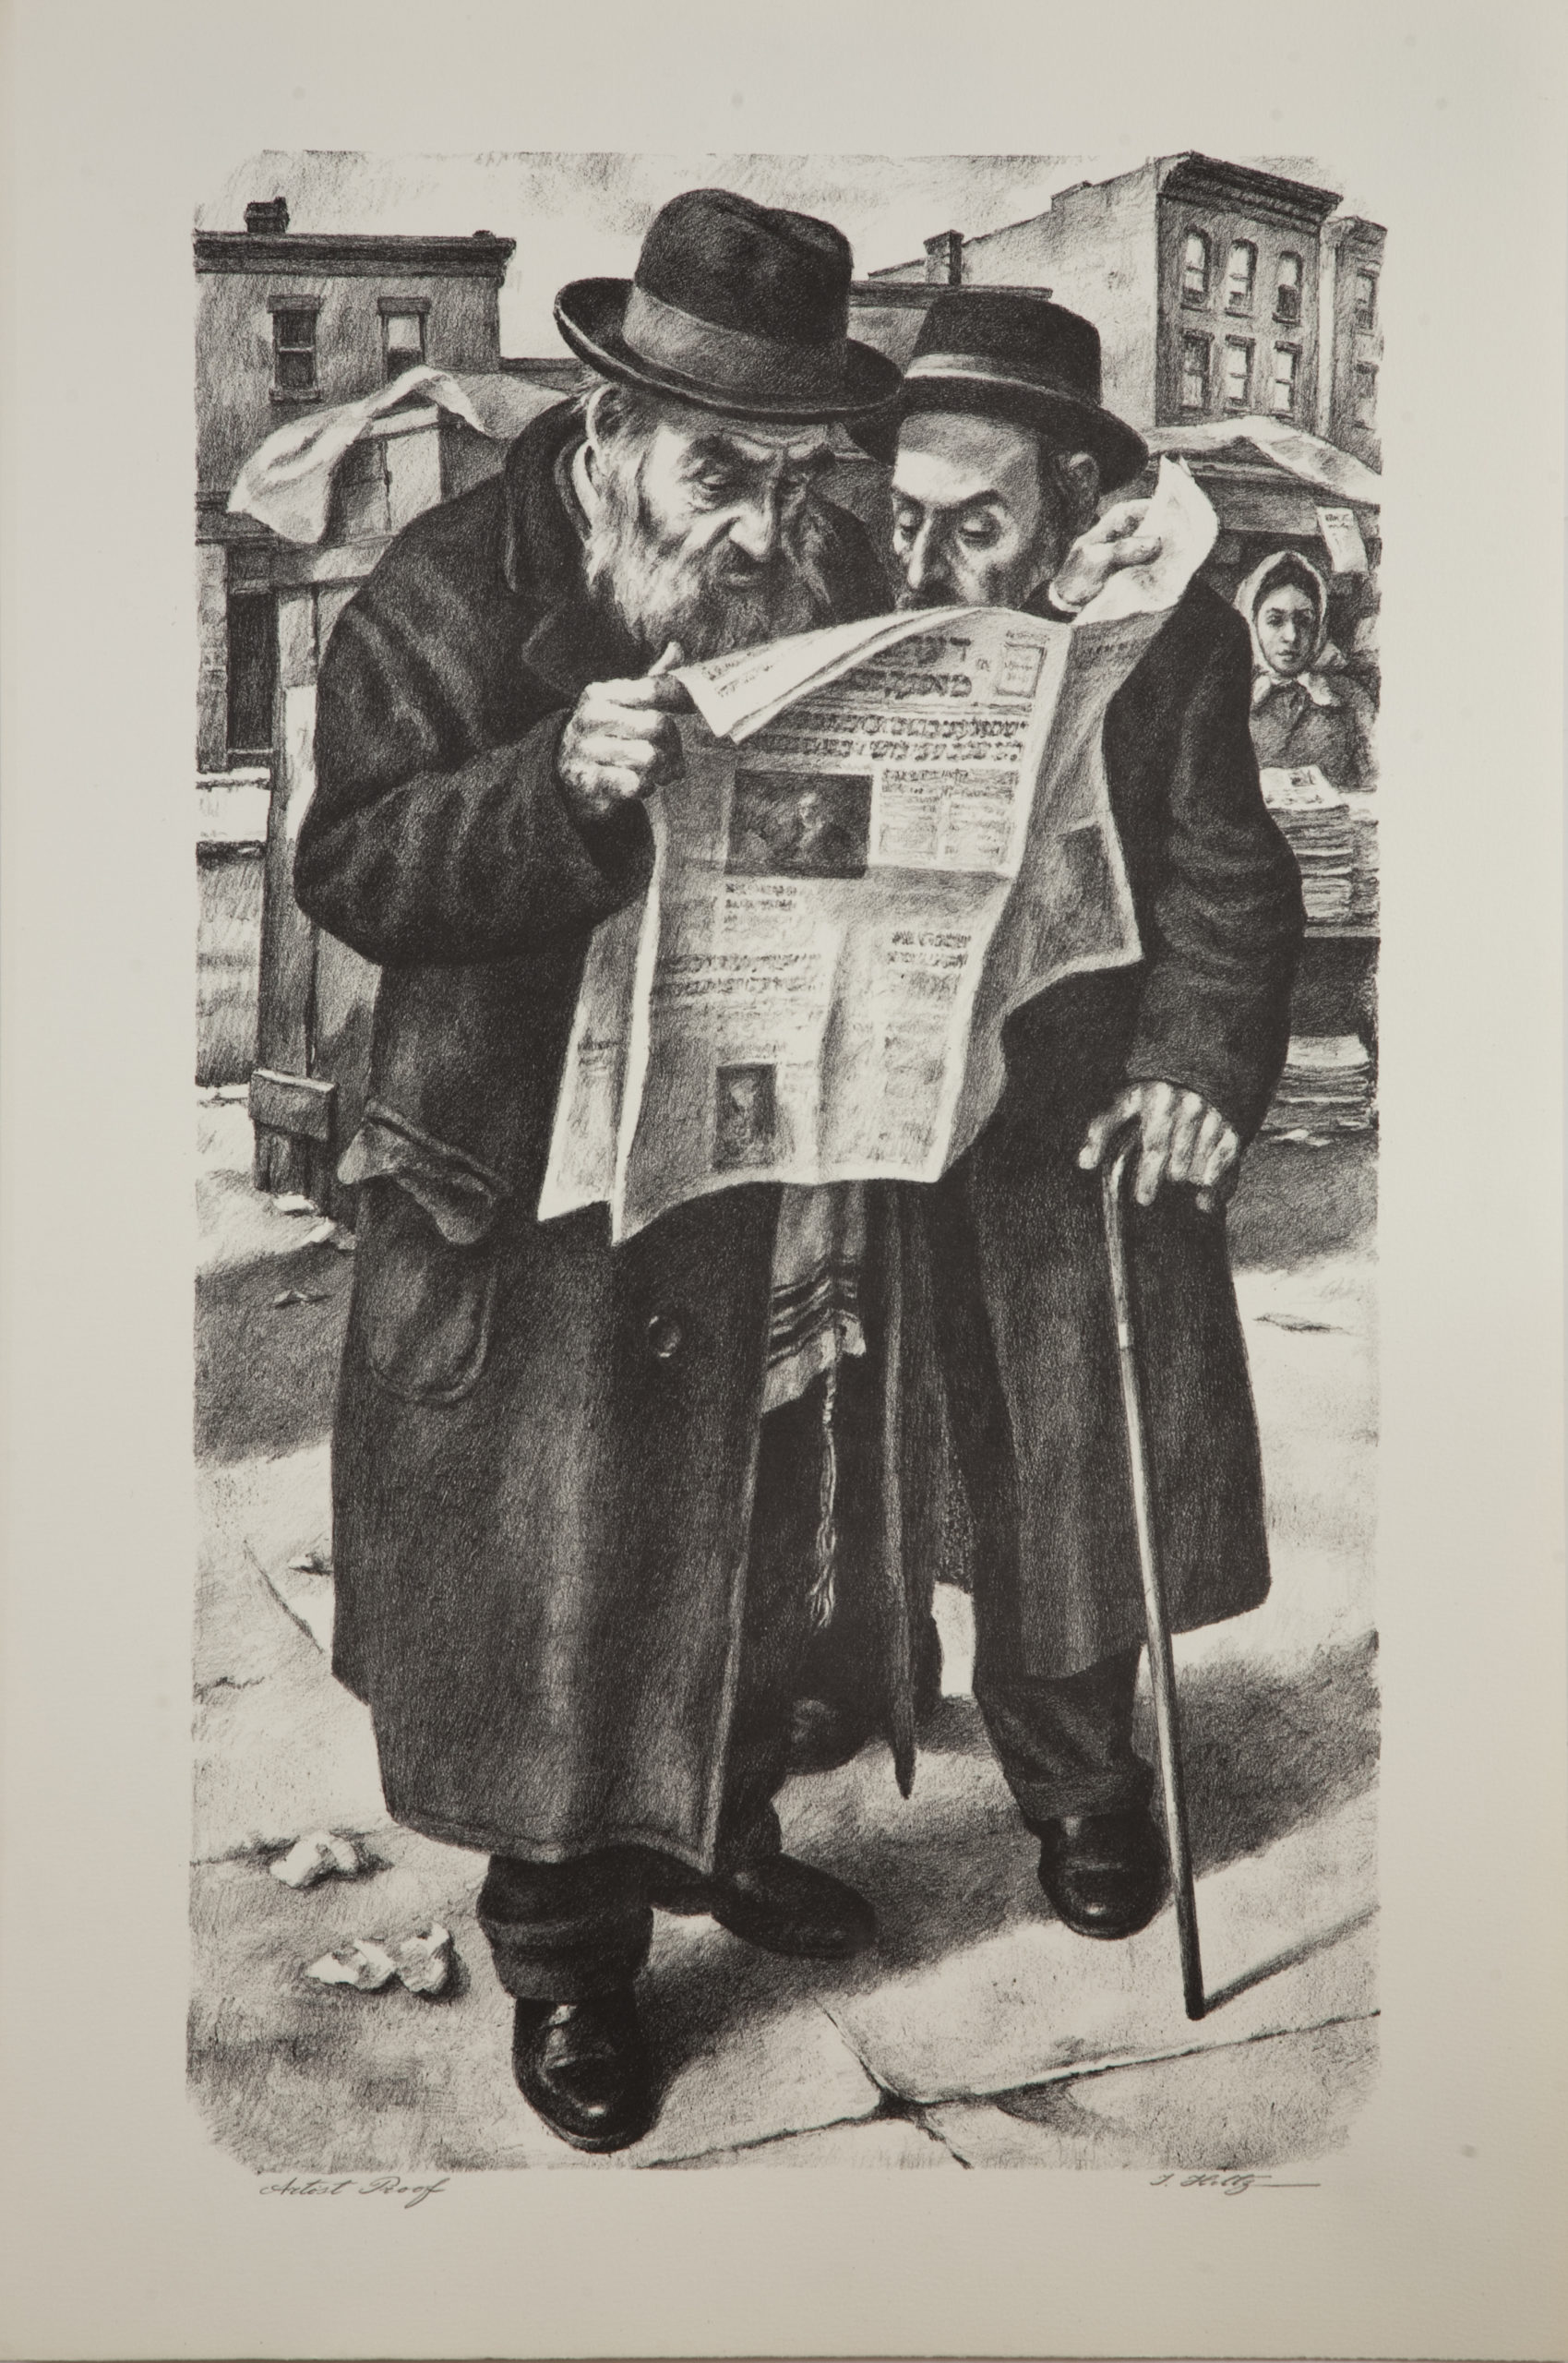 L19B Reading the Newspaper - Black & White - Lithograph - 20 x 30 - No Frame- $500